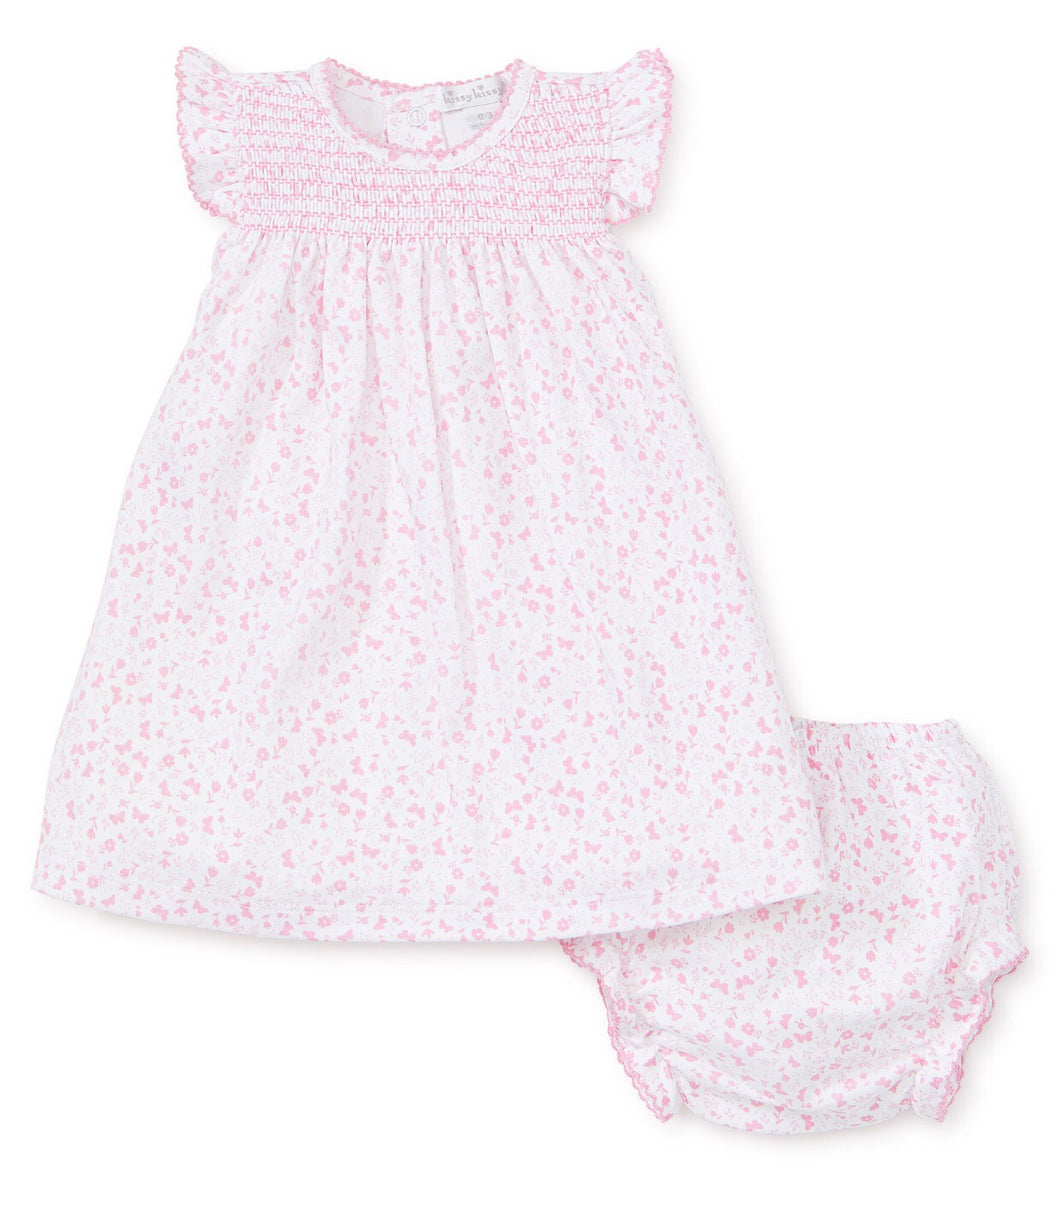 Mini Blooms Dress Set